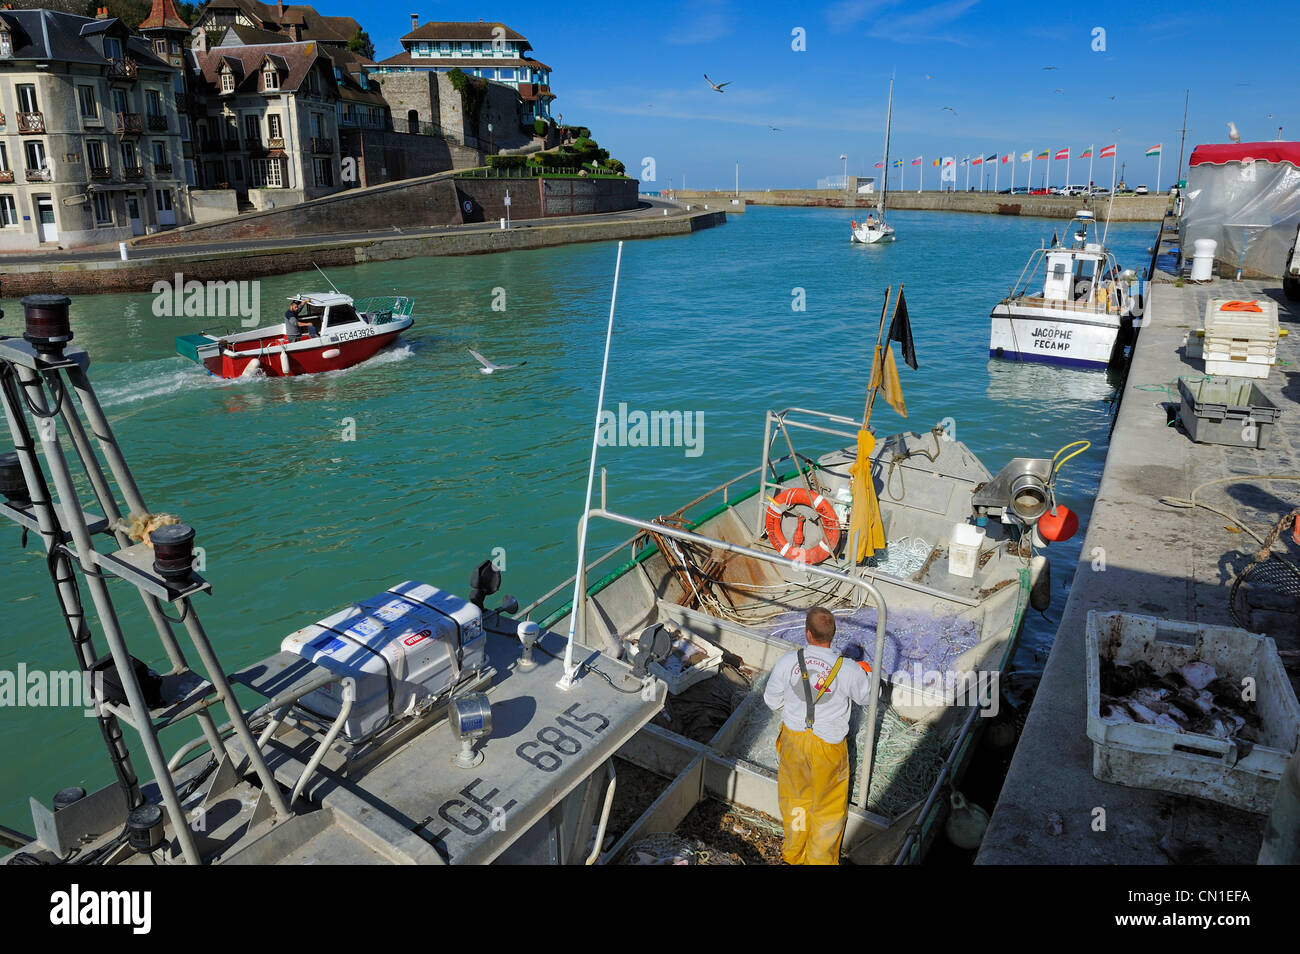 France, Seine Maritime, Saint Valery en Caux harbour, unloading of the catch of the day - Stock Image